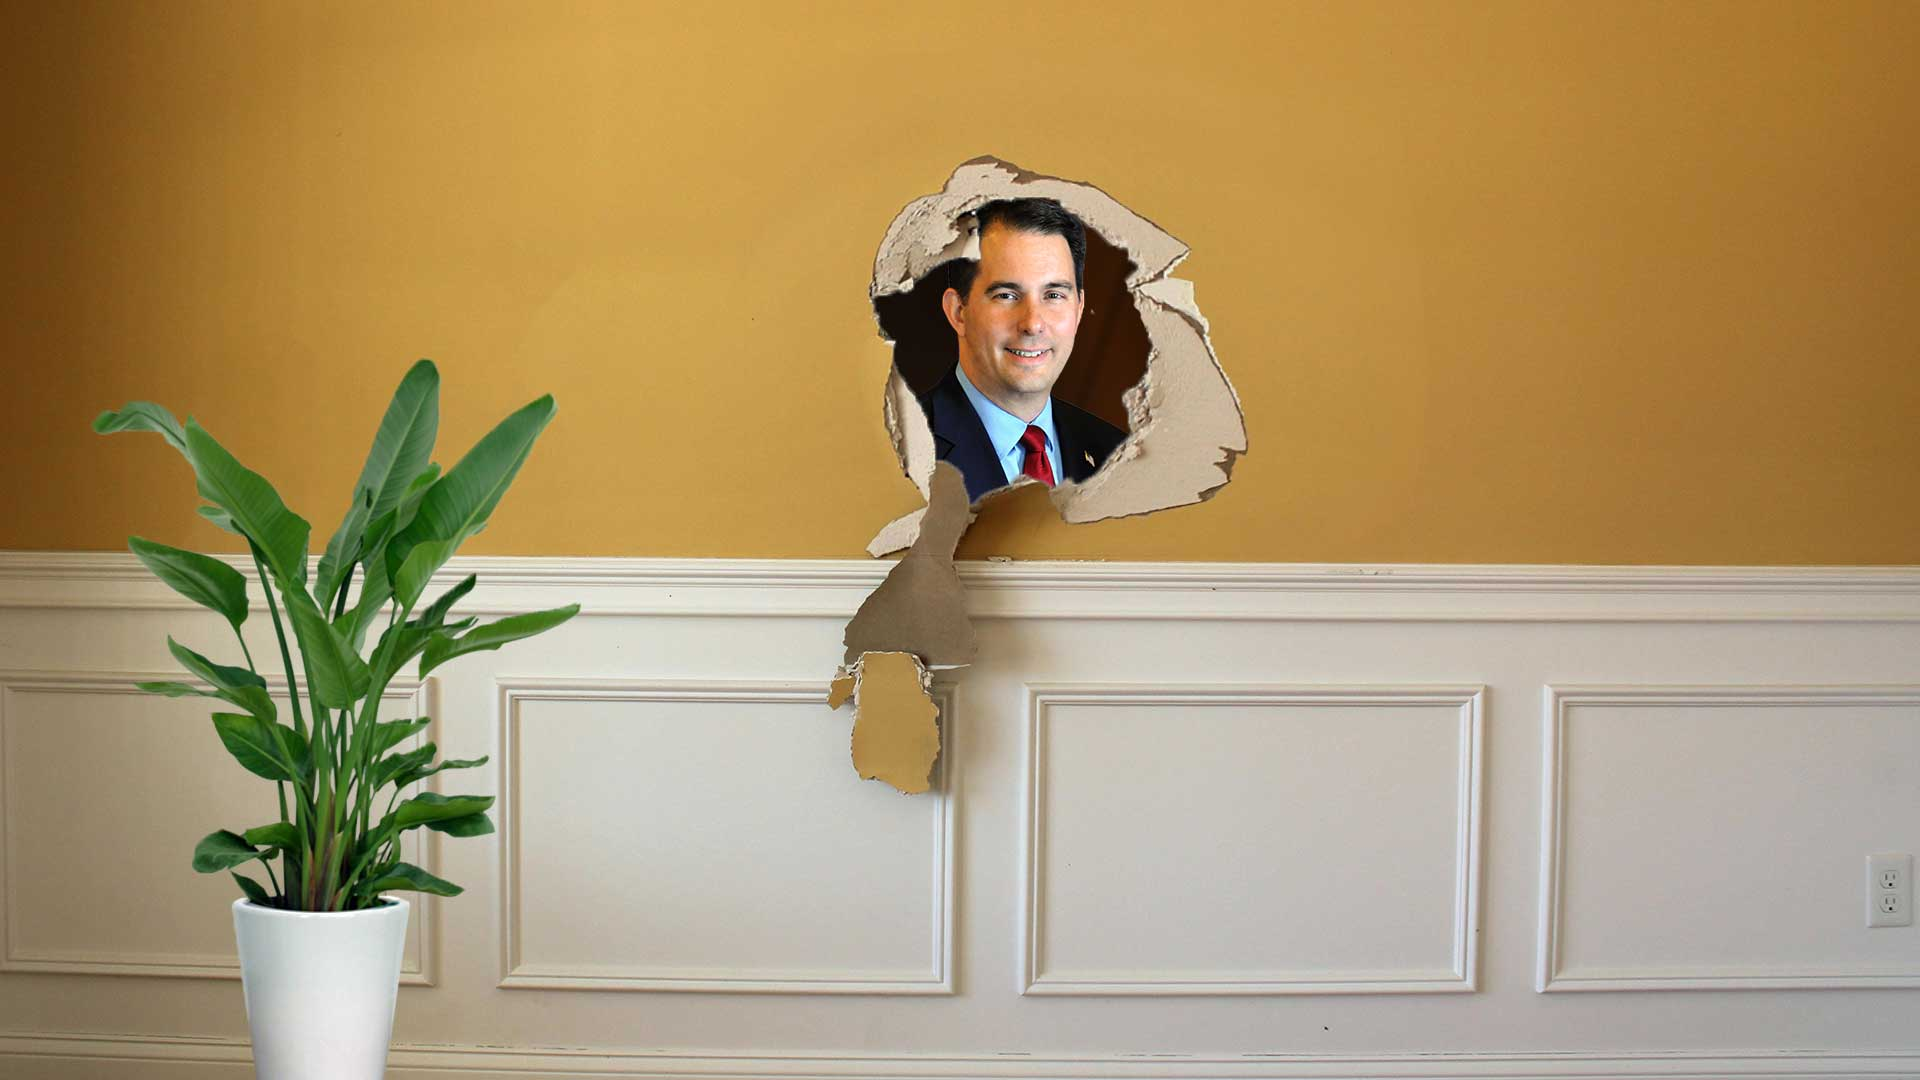 Scott-Walker-Burrows-into-Governors-Mansions-Walls,-Refuses-to-Leave.jpg